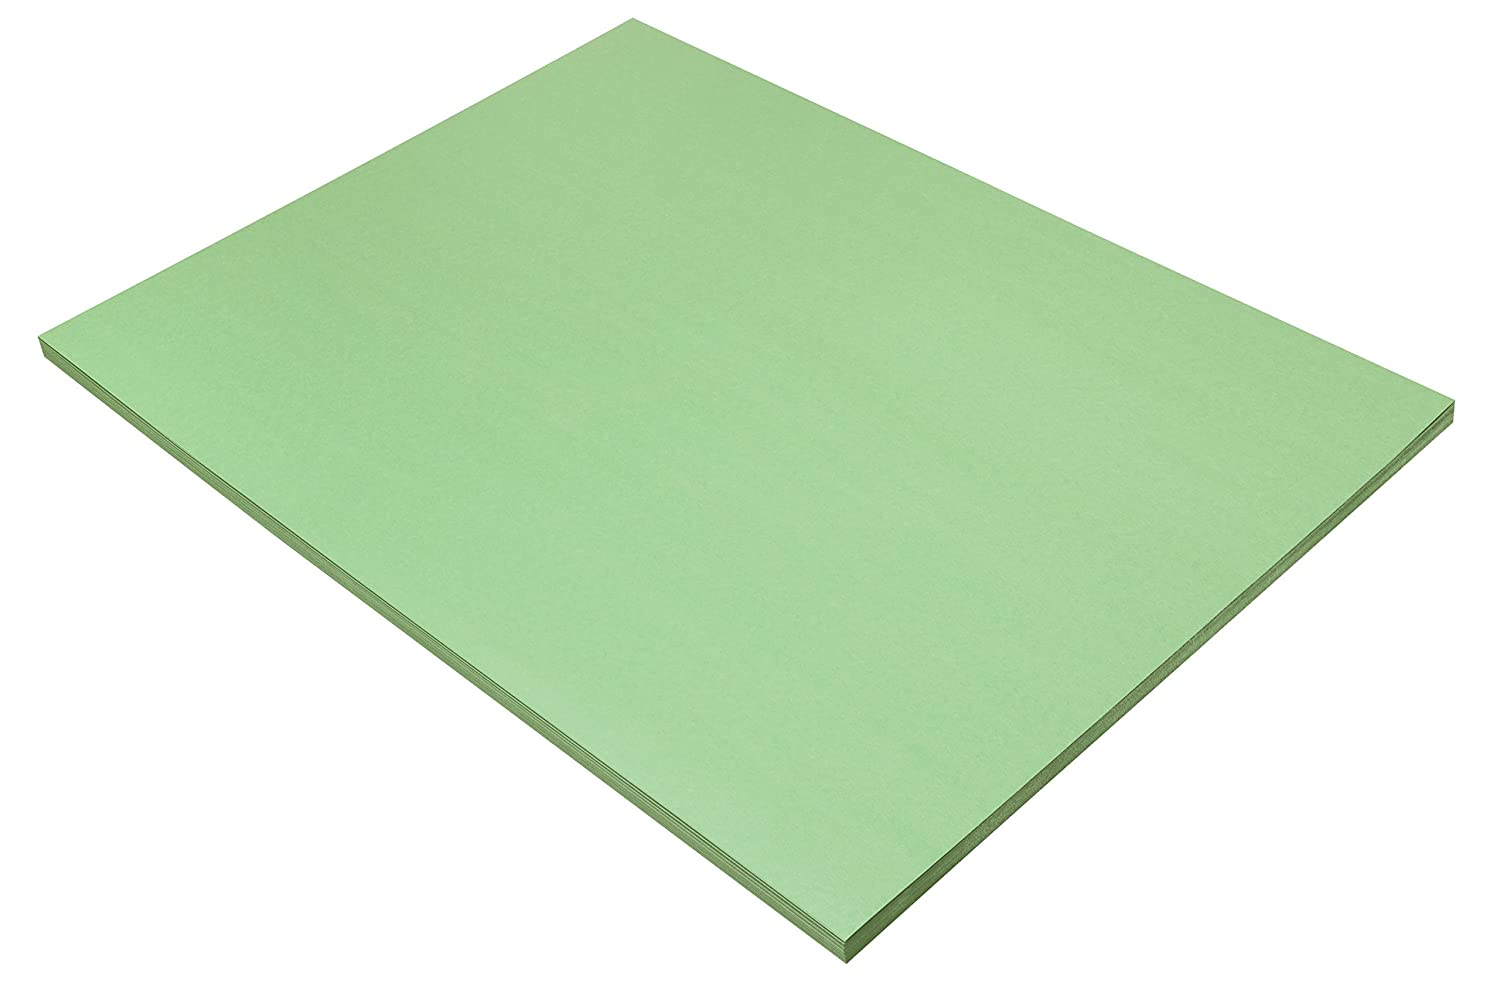 50-Count 18 x 24 Light Green 18 x 24 Pacon Corp. Pacon SunWorks Construction Paper 8117